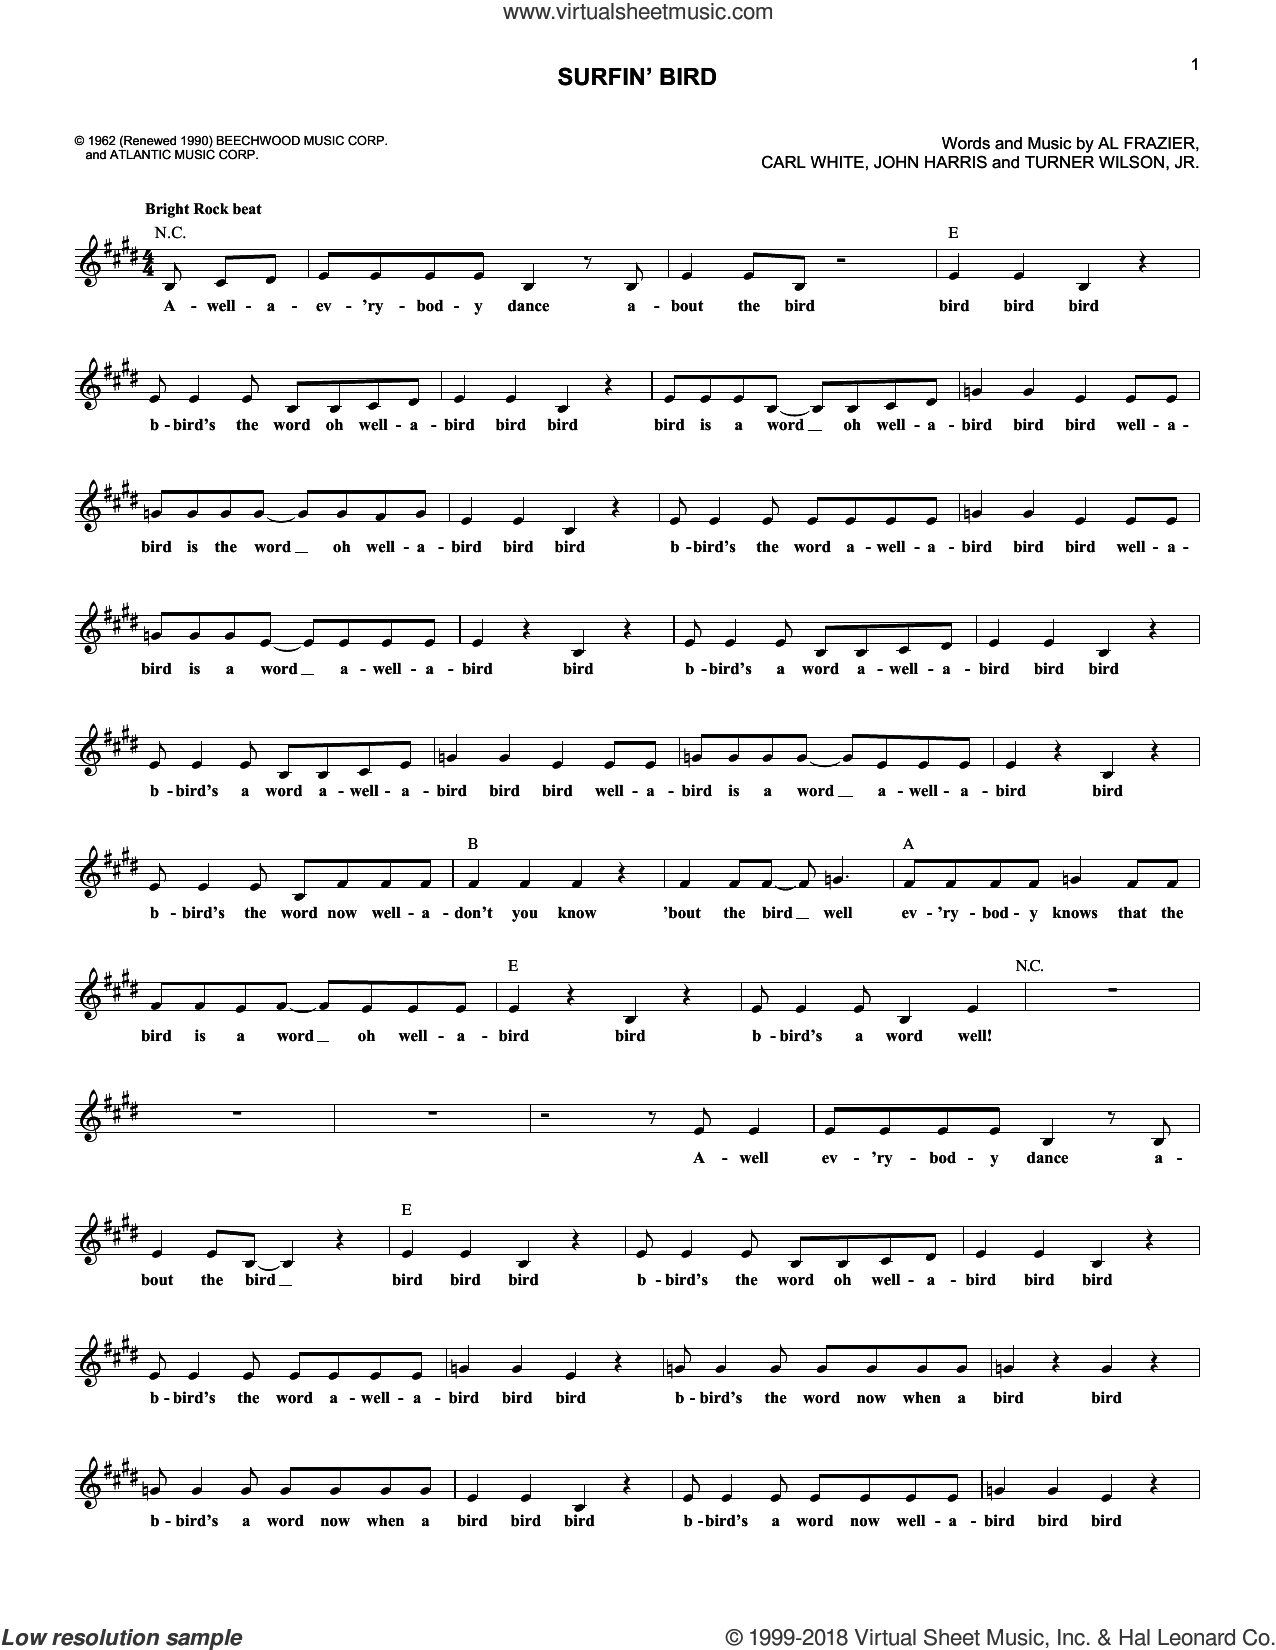 Surfin' Bird sheet music for voice and other instruments (fake book) by The Trashmen, Al Frazier, Carl White, John Harris and Turner Wilson, Jr., intermediate skill level